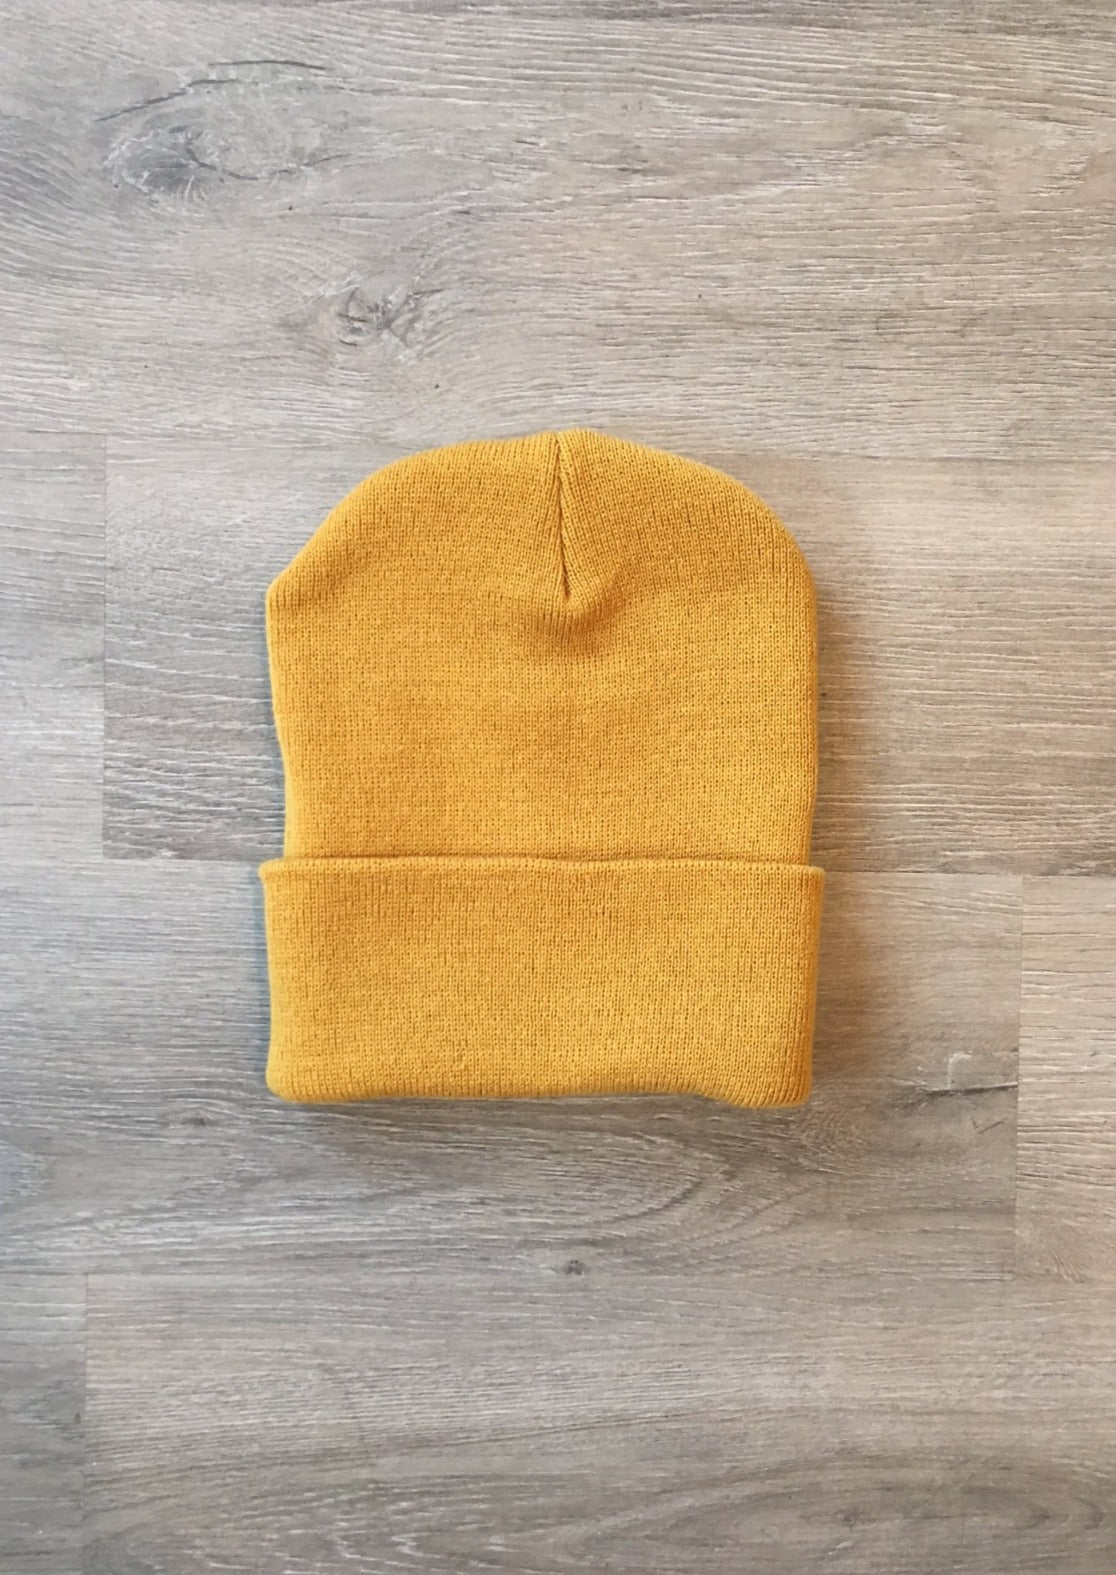 Made in USA Classic Cuffed Beanie Unisex Mustard Yellow